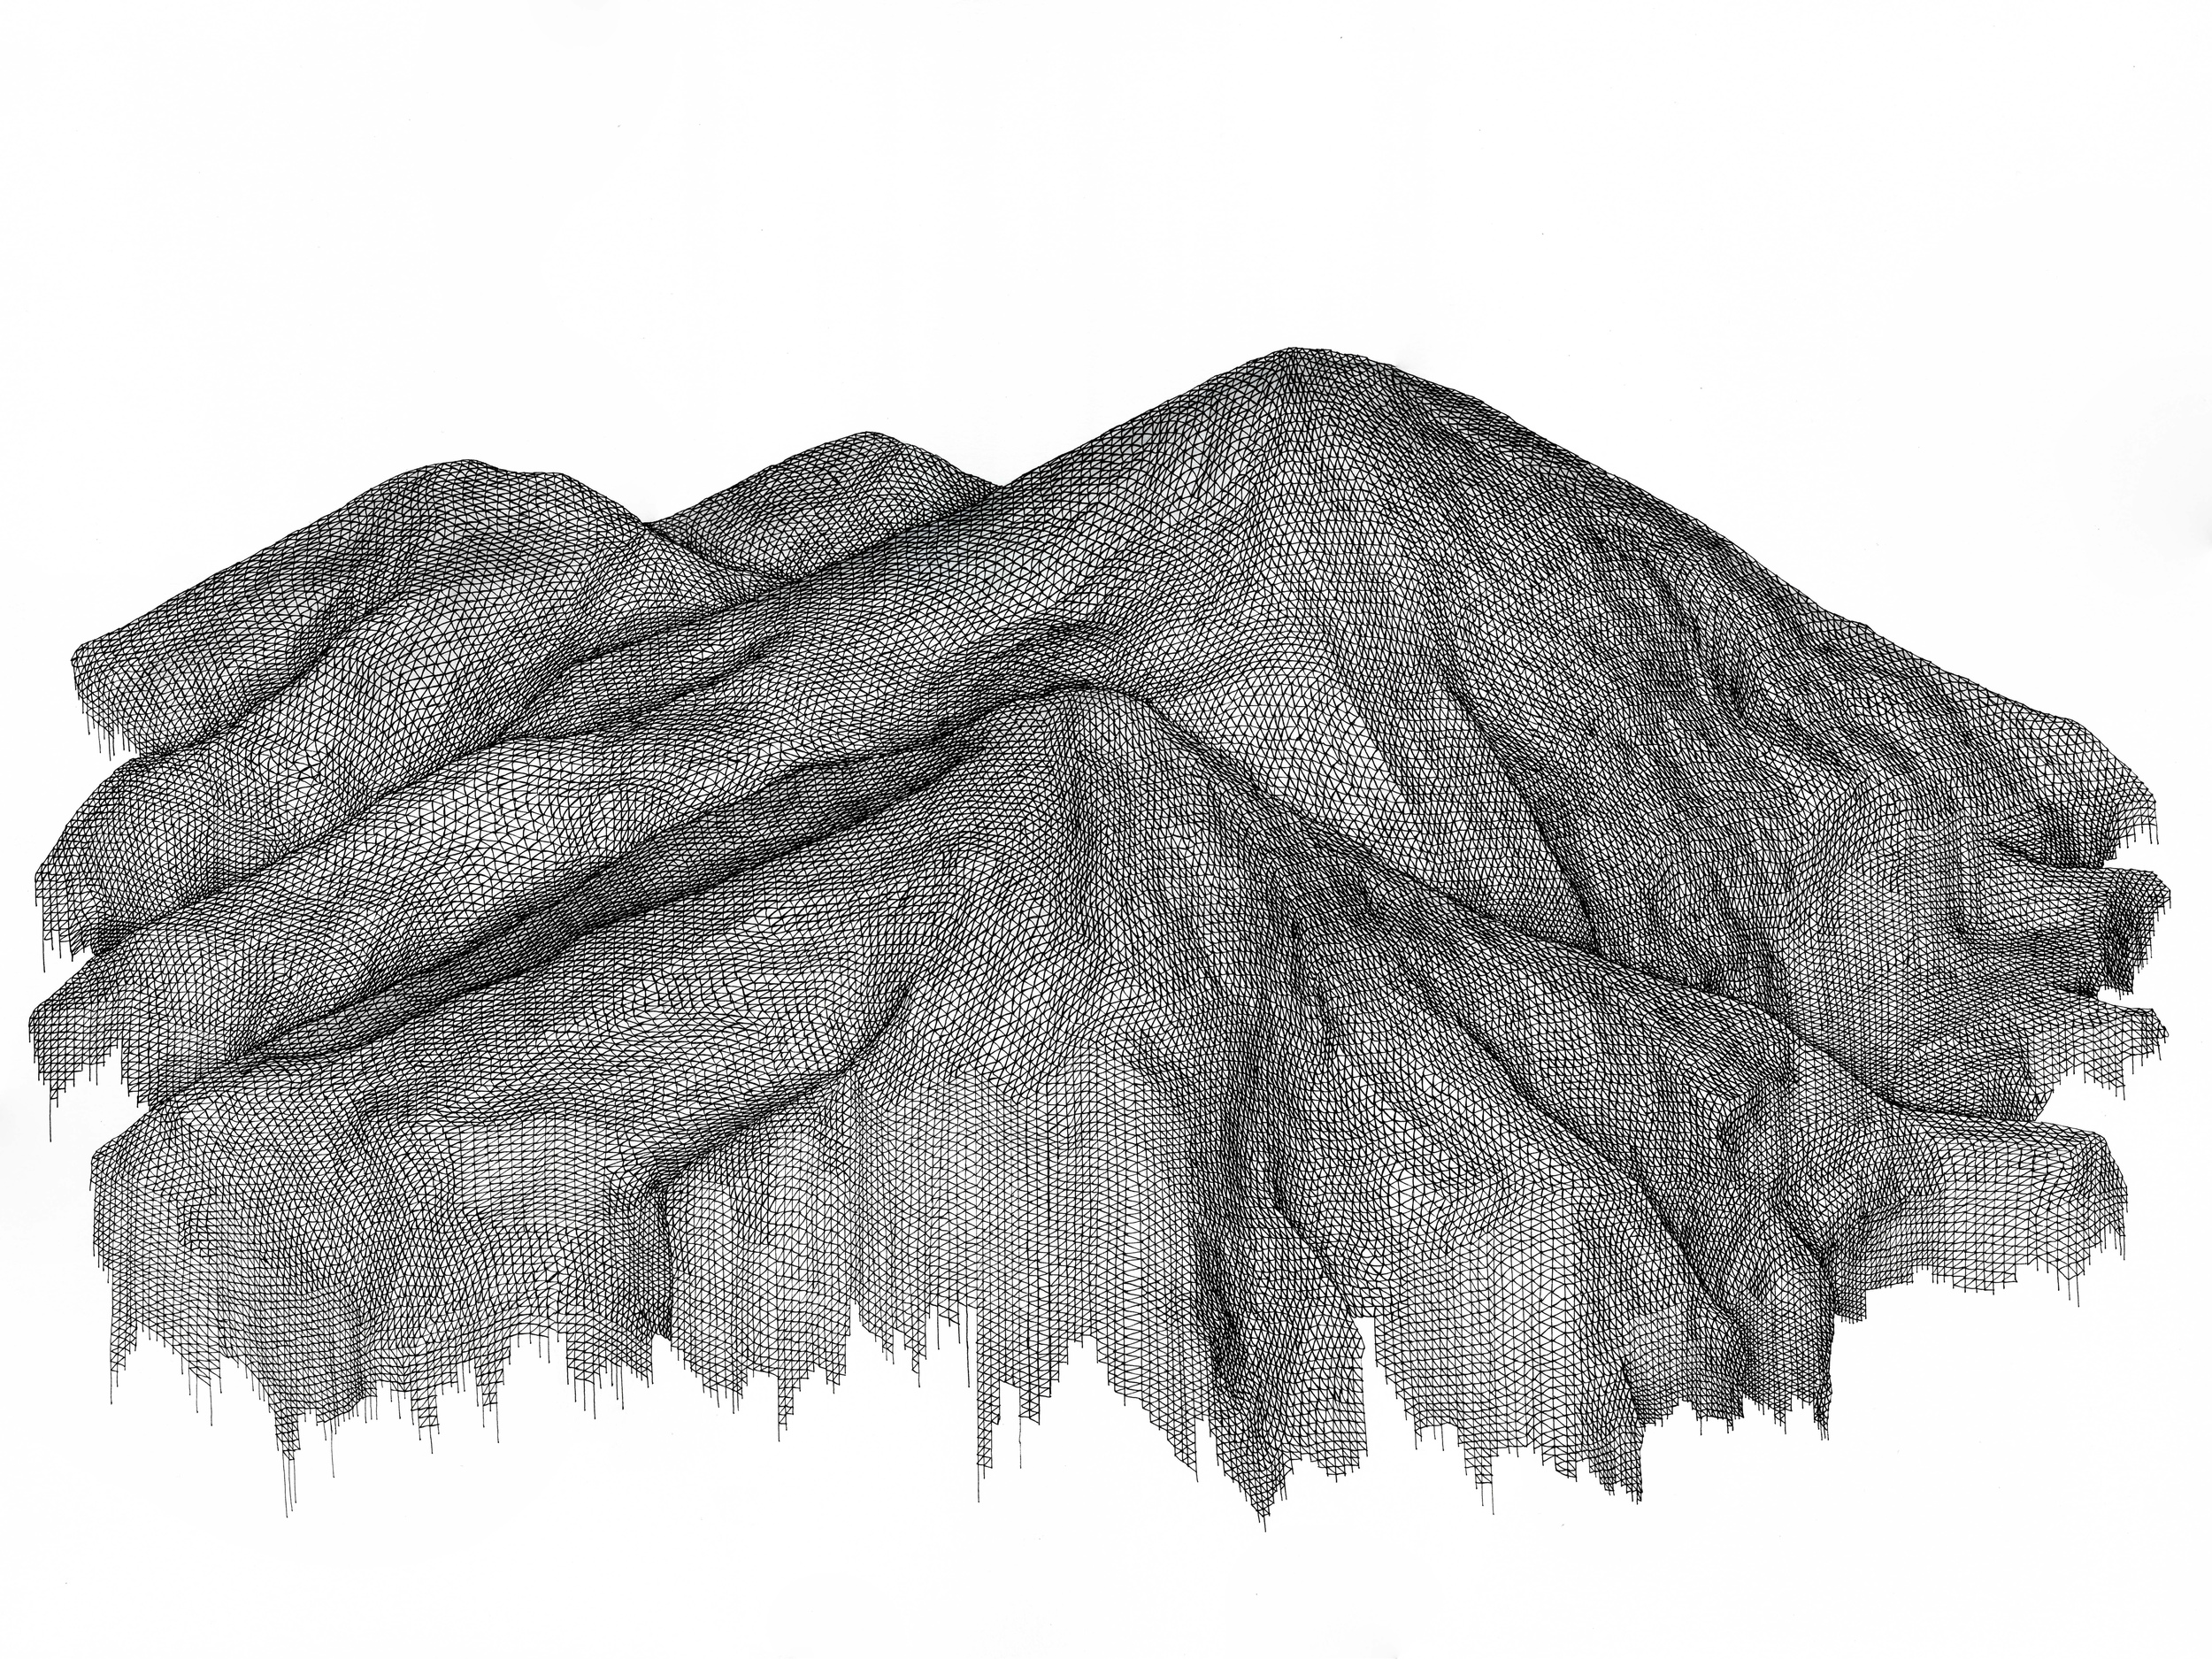 """Topographical Glitch, 2015  pen on 140 lb paper, 18"""" x 24""""   SOLD"""